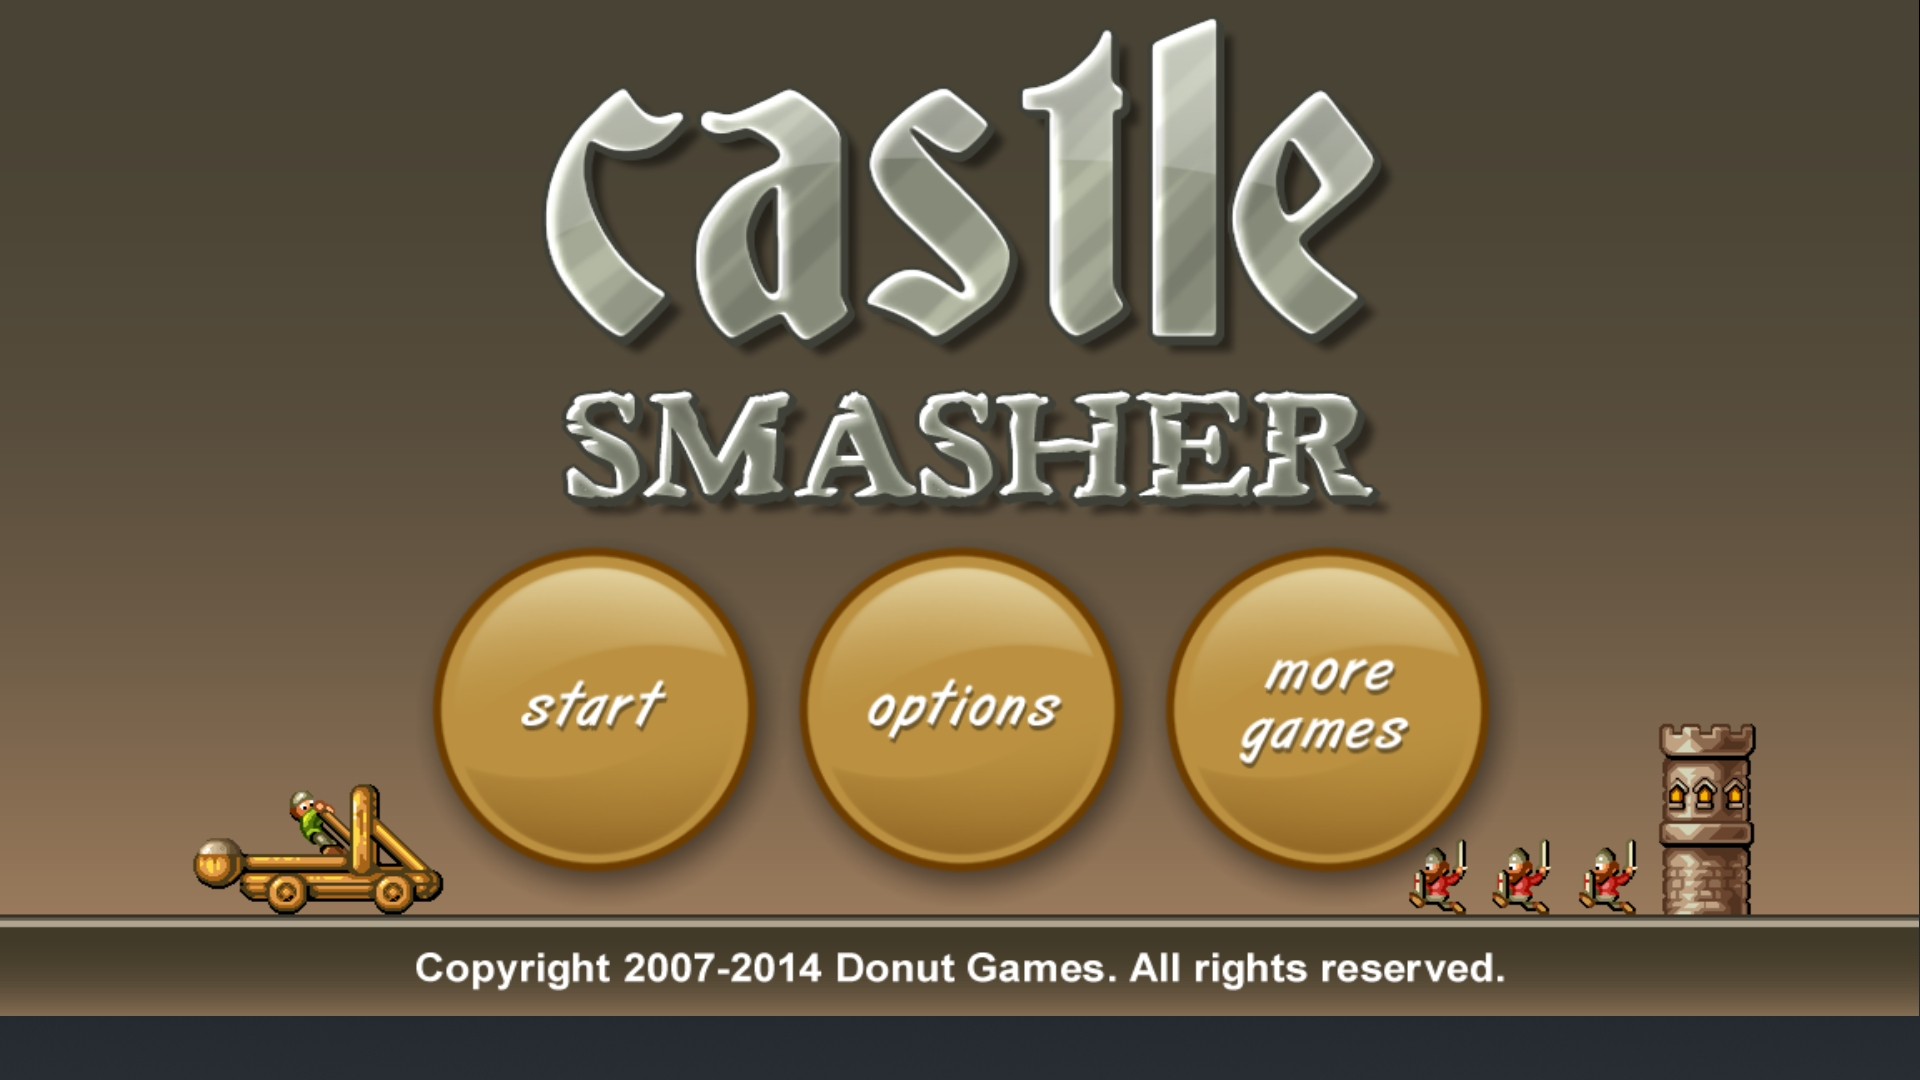 Bamse: Castle Smasher: Challenges: 03 Steps of Stone (Android) 62 points on 2019-08-21 17:07:08